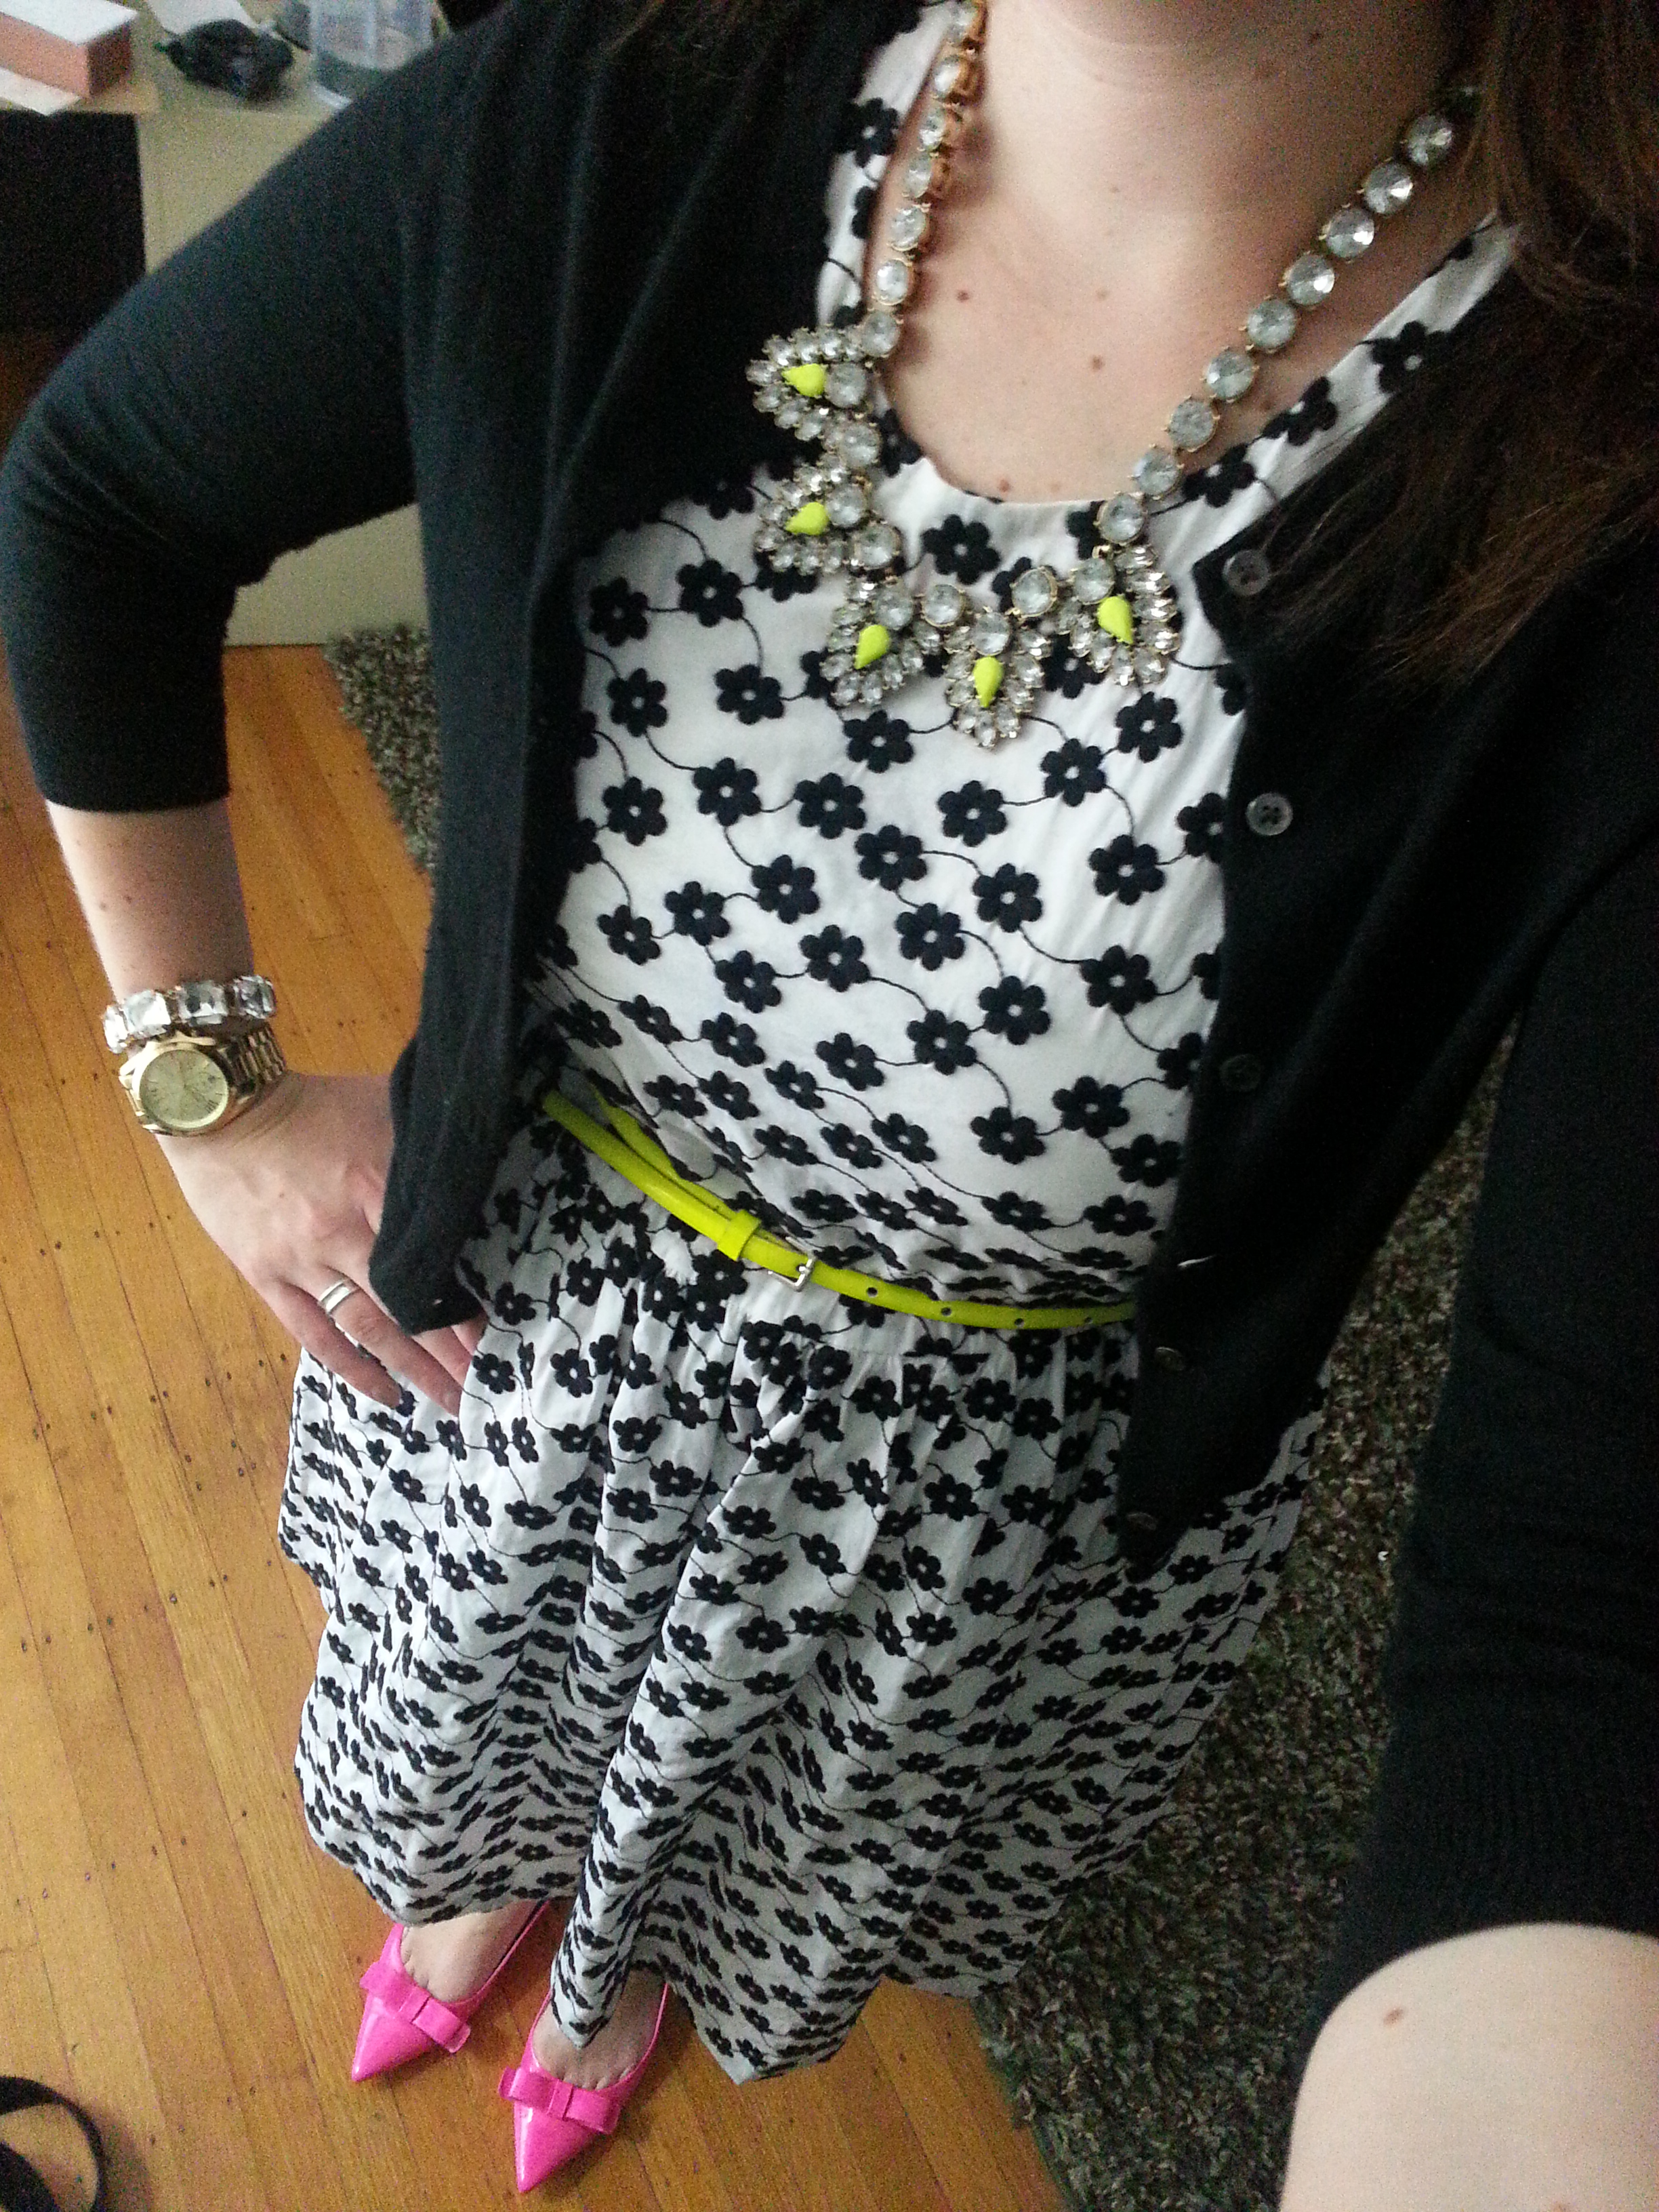 b9499179ff5 Necklace  J.Crew Factory Jeweled Triangle Necklace   Cardigan   J.Crew  Featherweight Cashmere Cardigan   Flats  Kate Spade Gabe Flats (sold out)